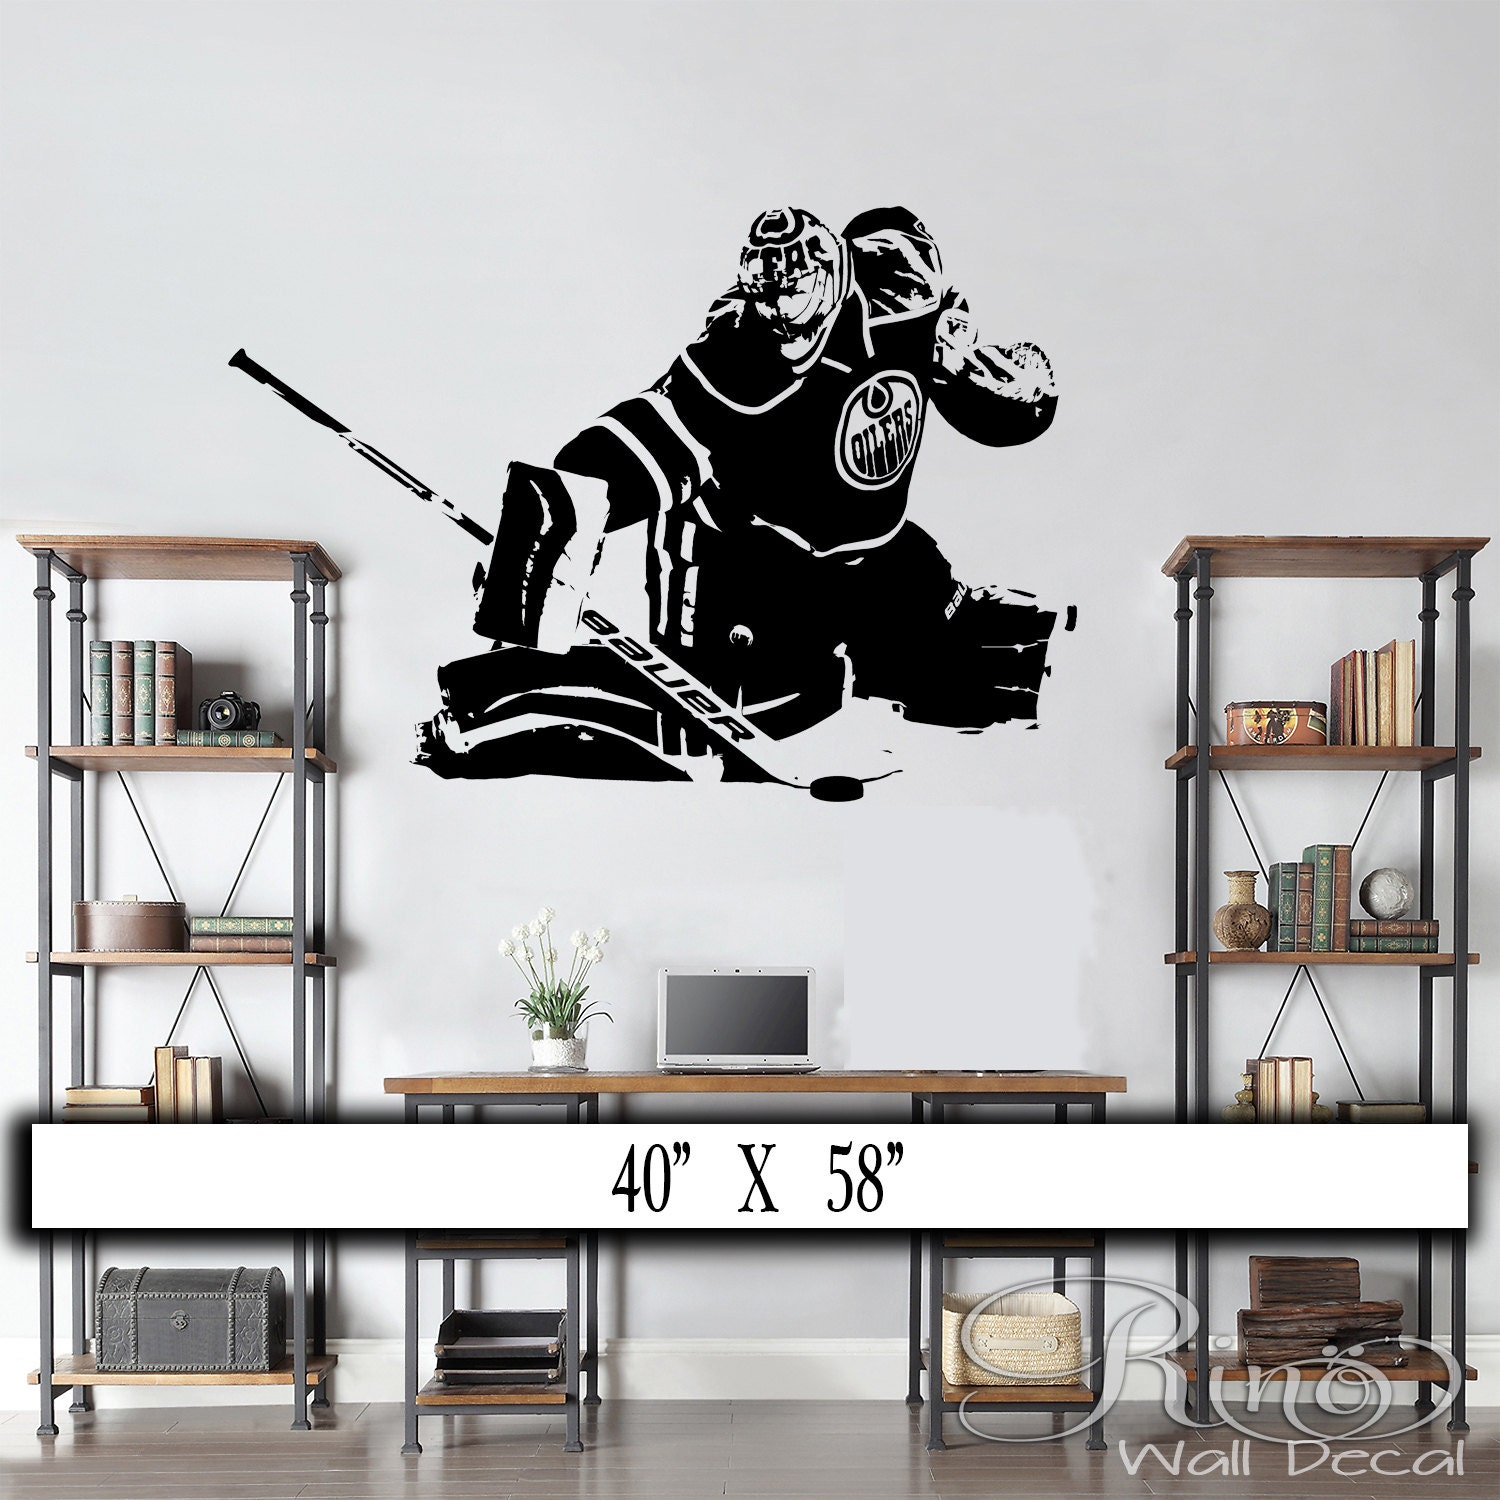 hockey goalie wall decal wall art vinyl sticker edmonton oilers cam talbot player silhouette home decor kids teen bedroom - Home Decor Edmonton